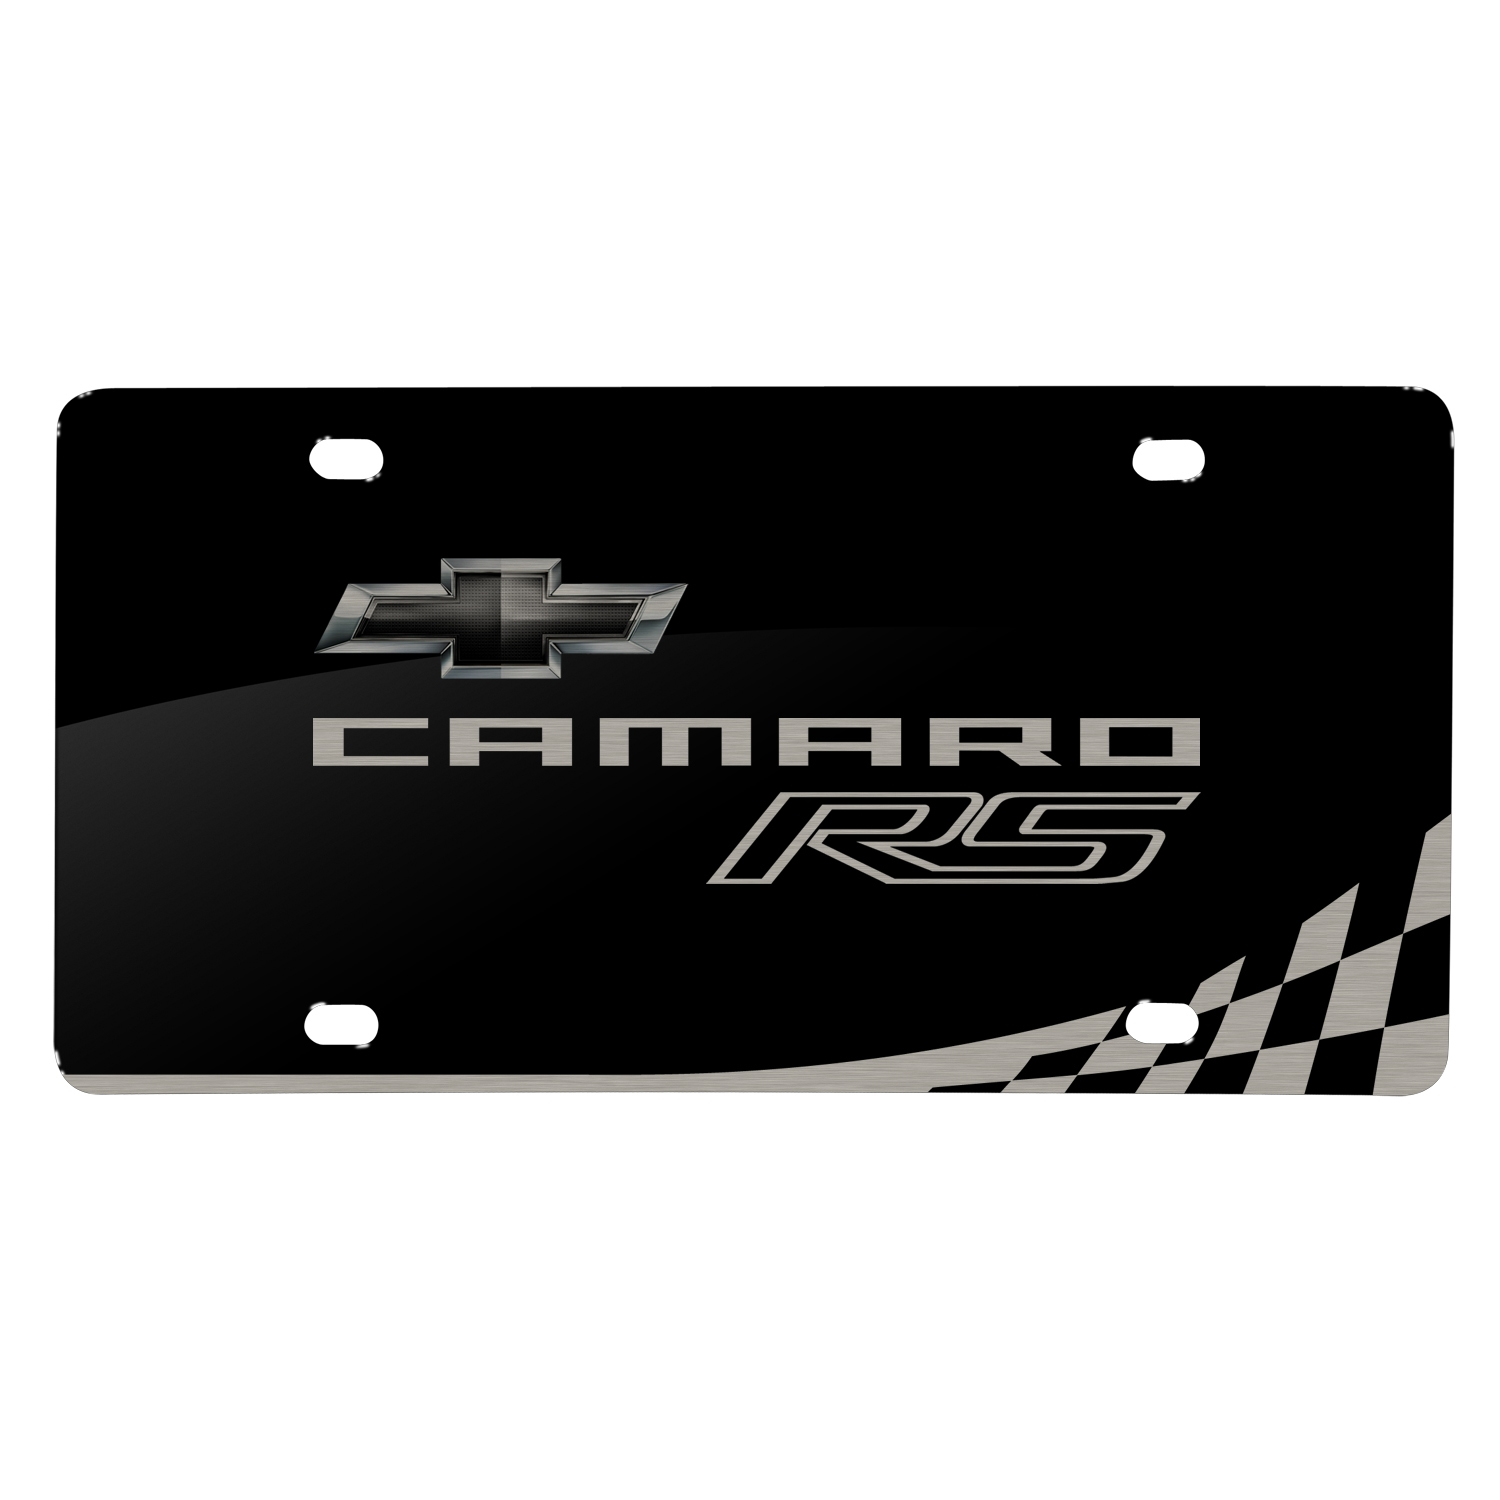 Chevrolet 2010 Camaro RS Laser Mark Checker Stripe Black Acrylic License Plate